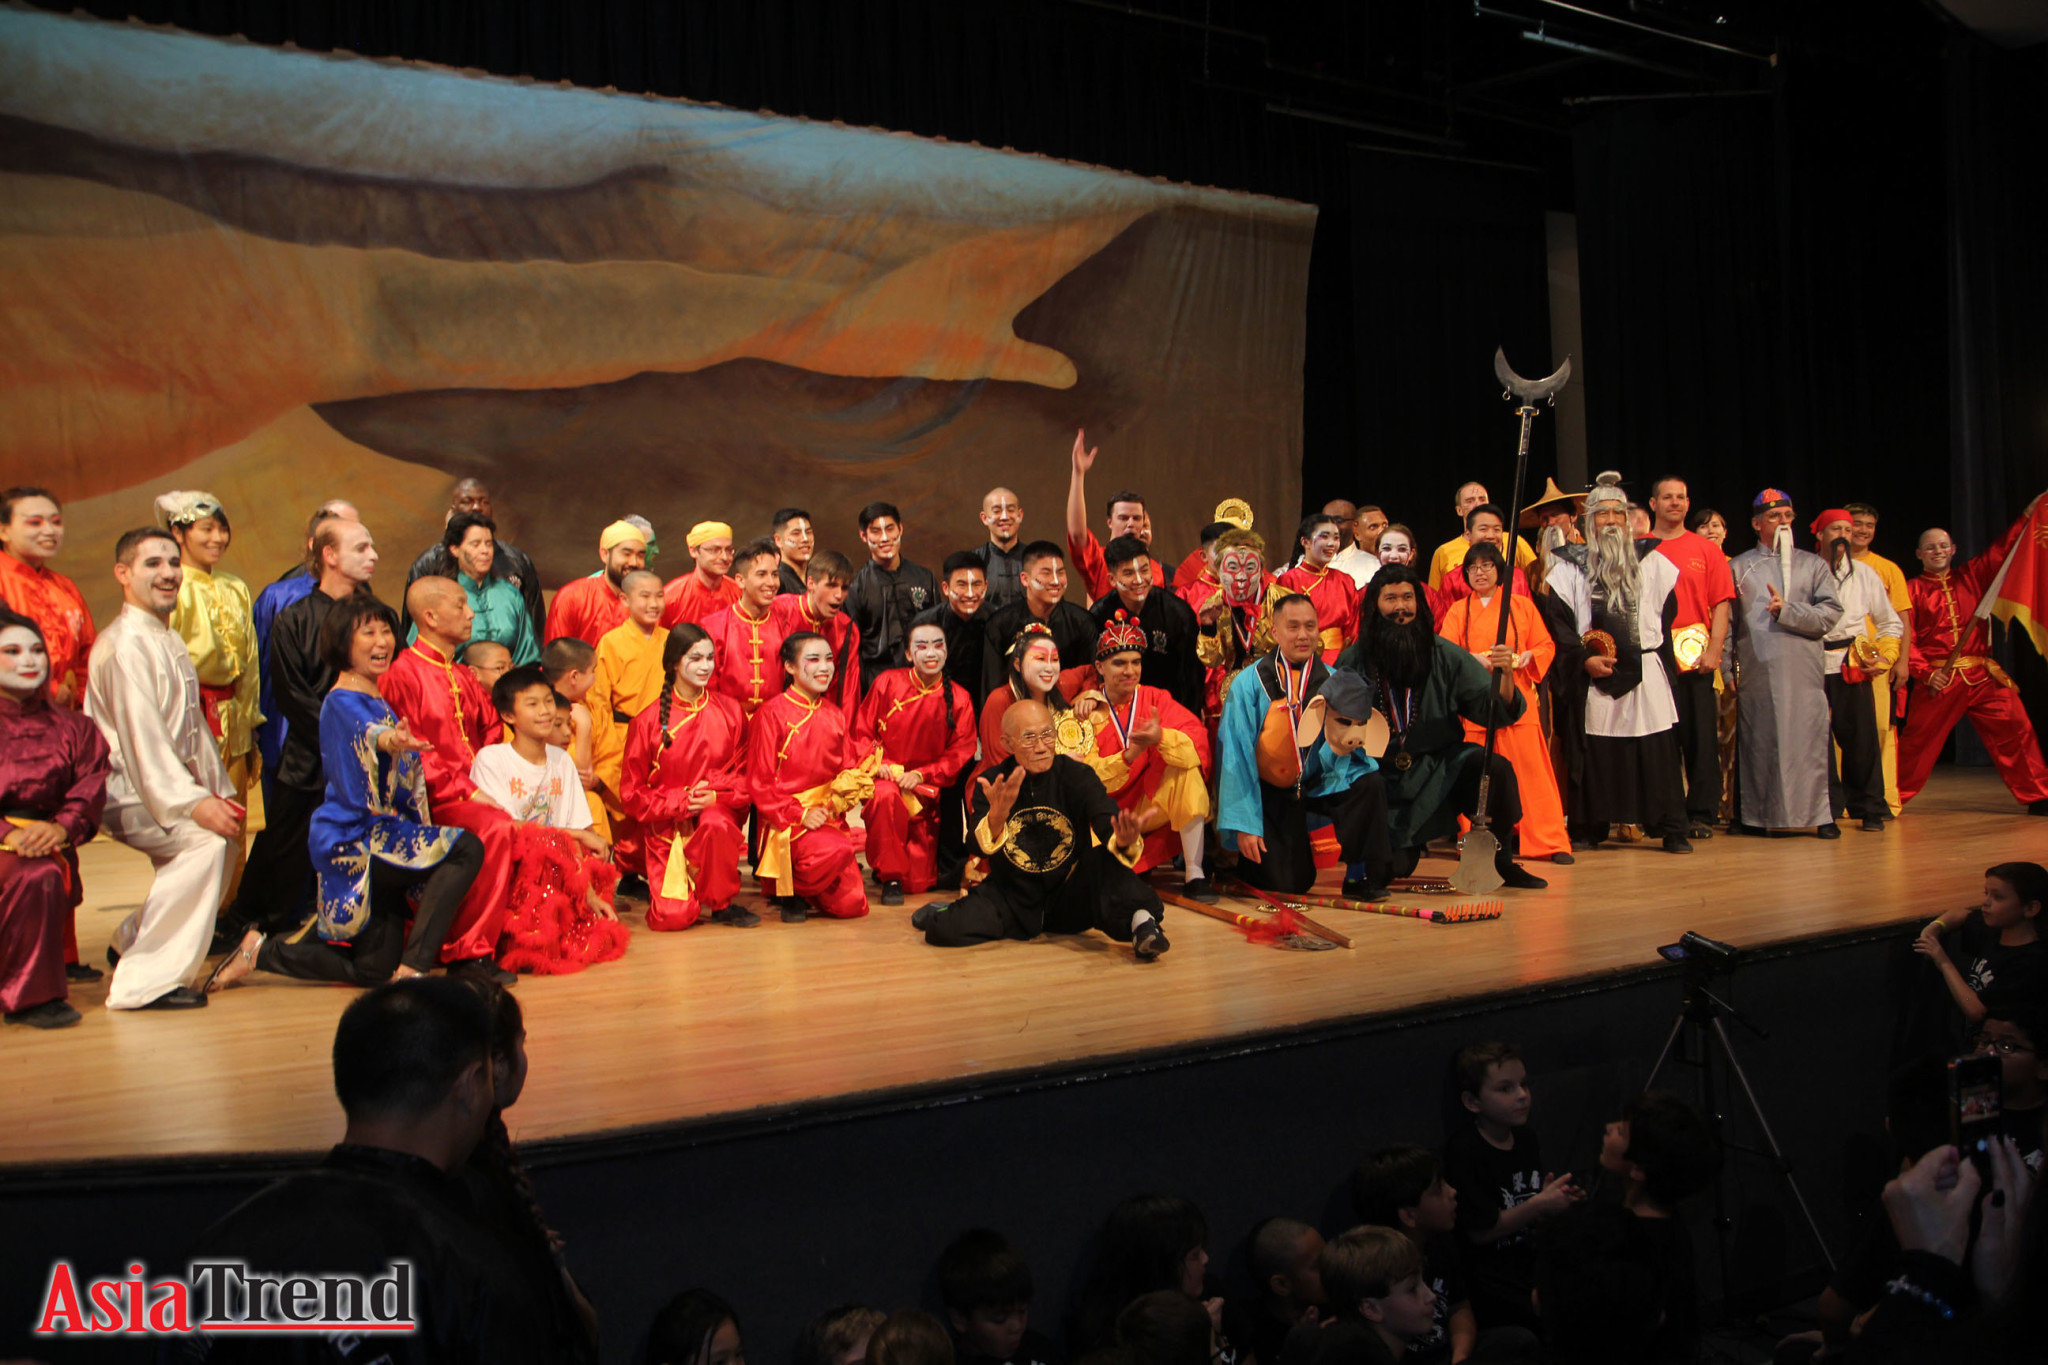 Journey to the West features 30 instructors and 150 students with only one group rehearsal